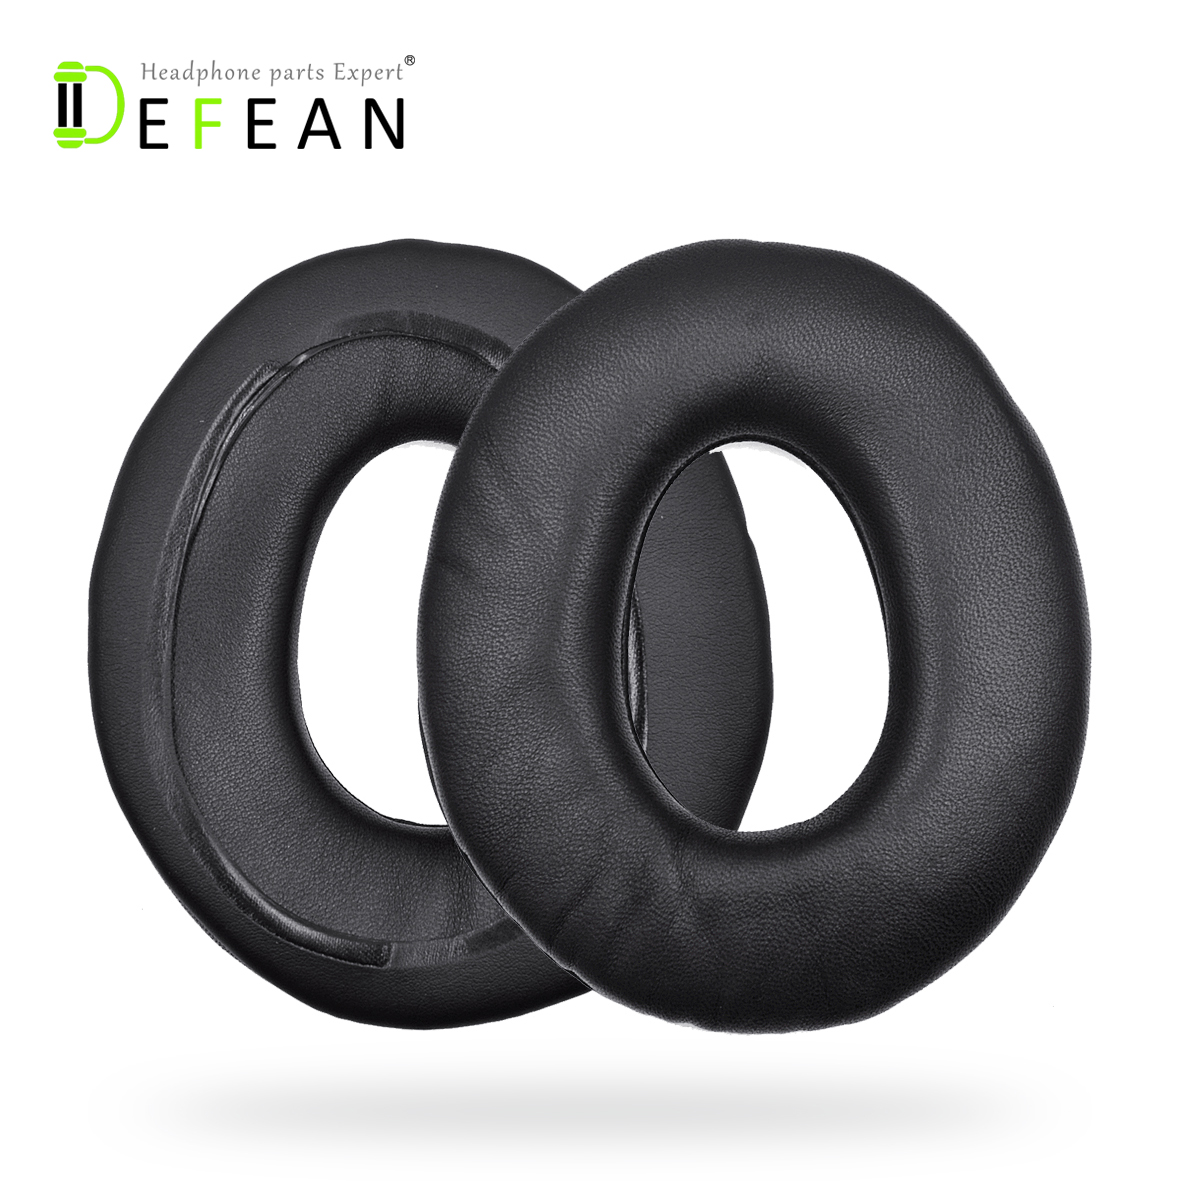 Defean Genuine Leather Ear Pads Cushion for Sony MDR CD1000 CD3000 CD750 CD850 CD950 CD headphones-in Earphone Accessories from Consumer Electronics